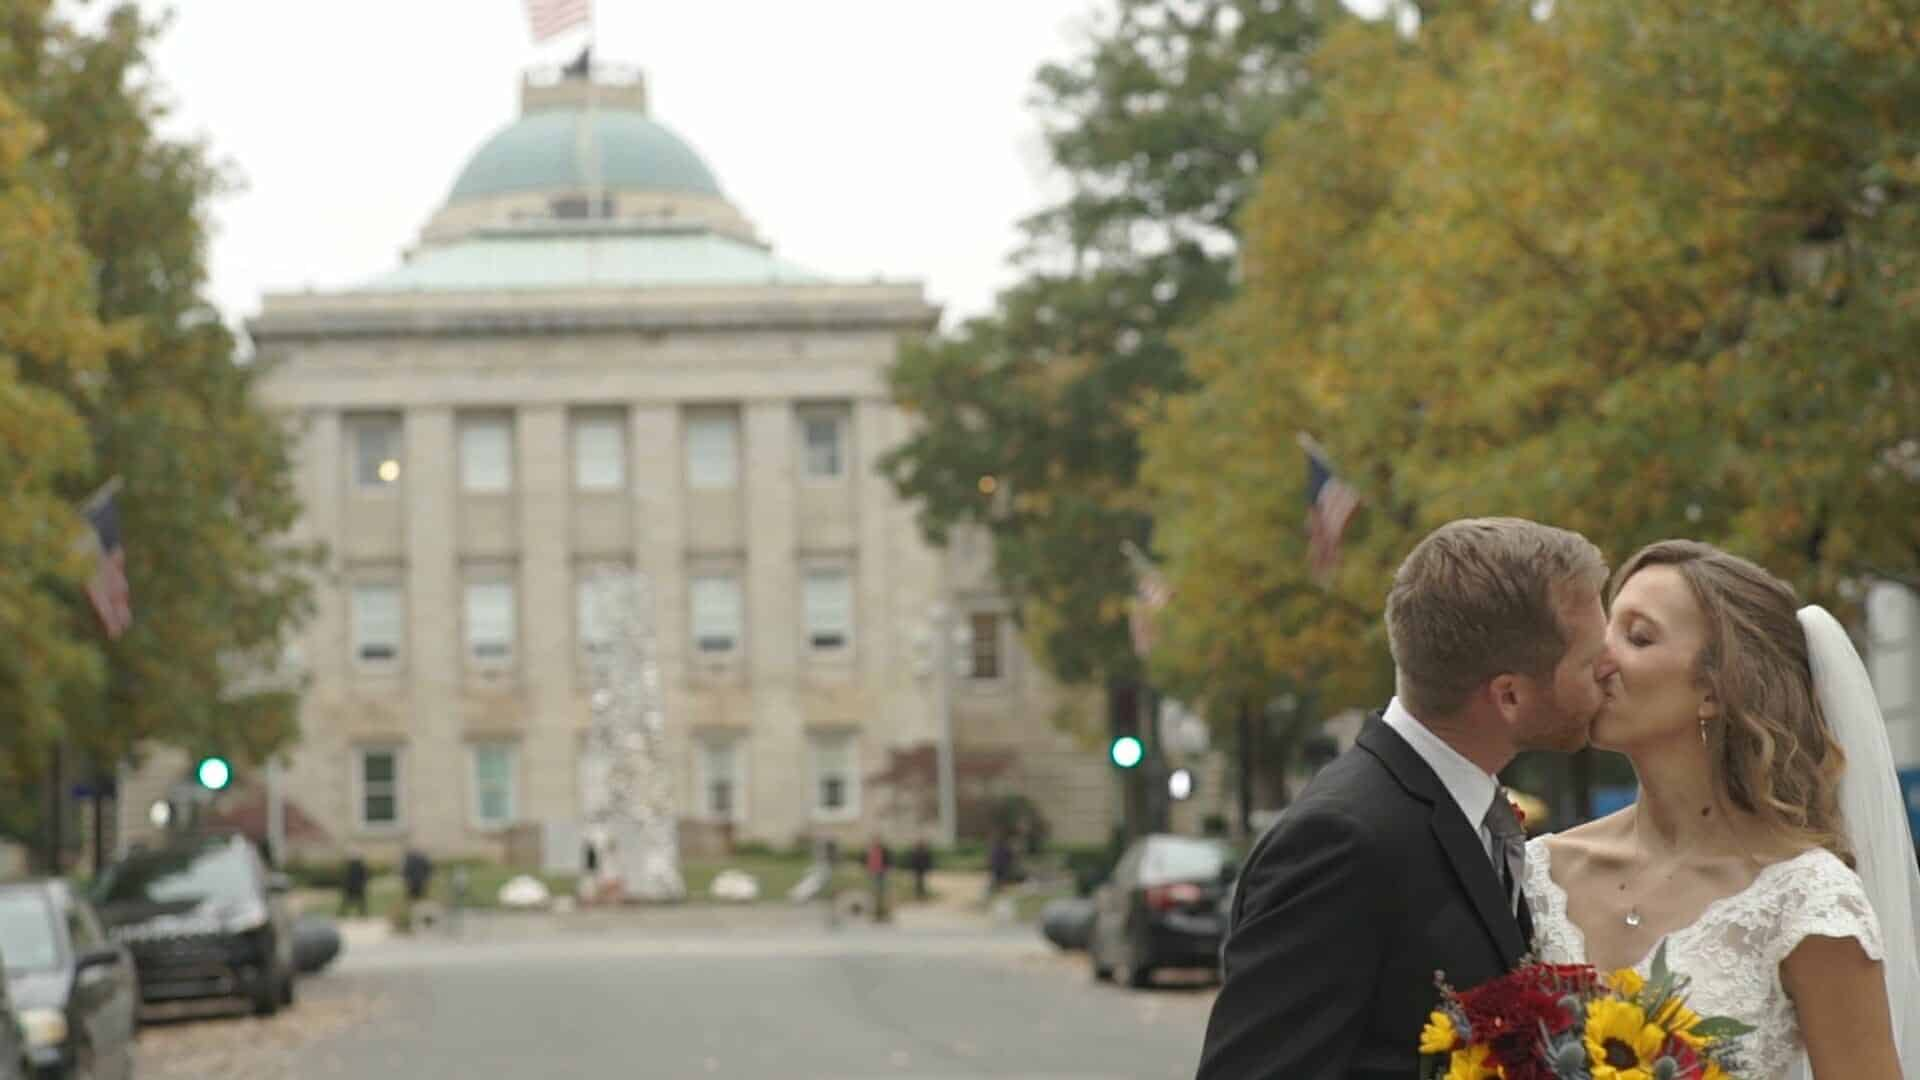 Wedding Videography in Raleigh